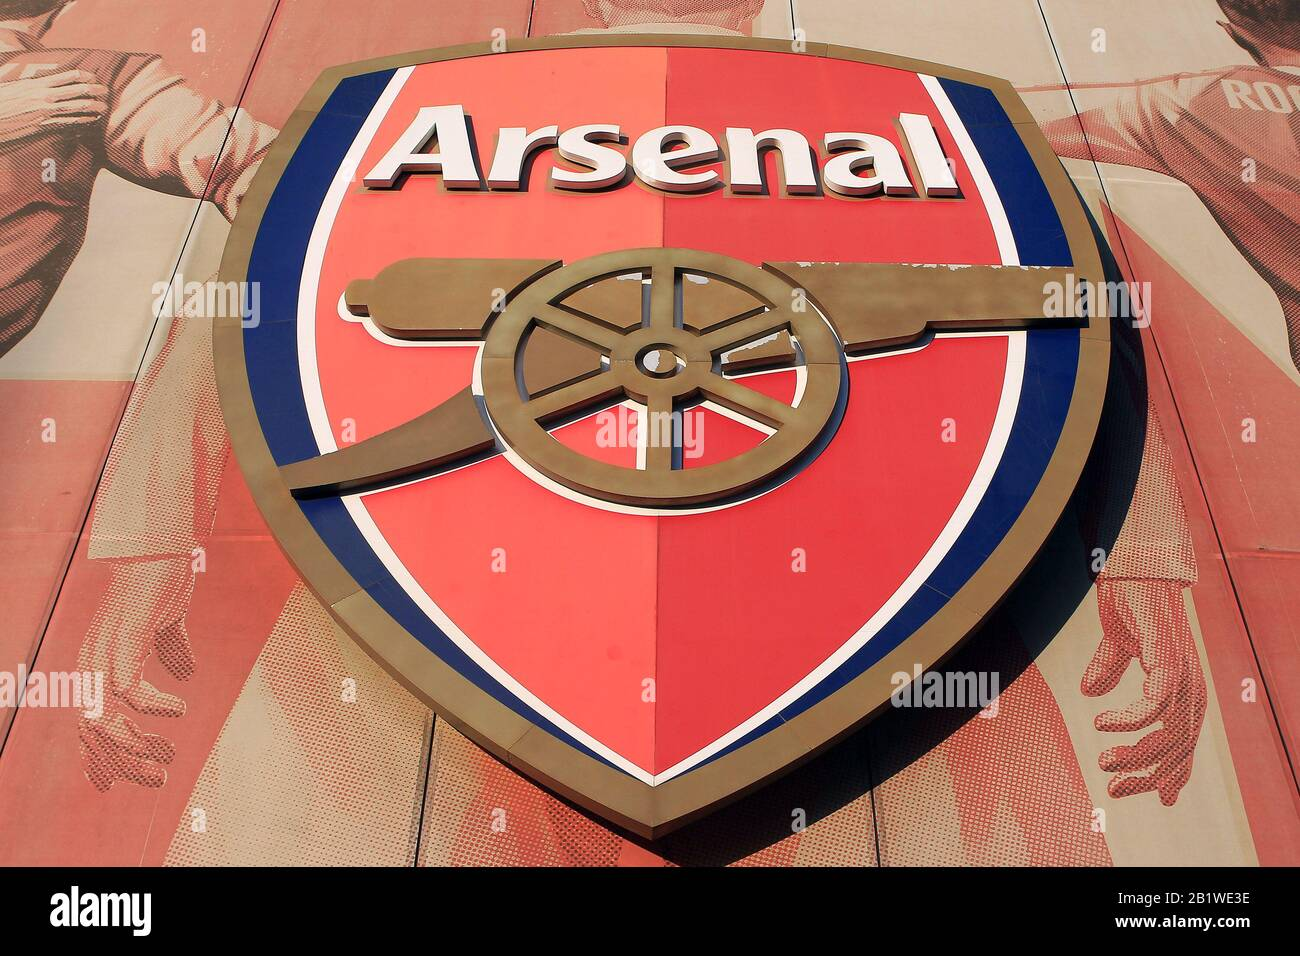 https www alamy com london uk 27th feb 2020 a general view of large arsenal club logo outside the stadium uefa europa league round of 32 2nd leg match arsenal v olympiacos at the emirates stadium in london on thursday 27th february 2020 this image may only be used for editorial purposes editorial use only license required for commercial use no use in betting games or a single clubleagueplayer publications pic by steffan bowenandrew orchard sports photographyalamy live news credit andrew orchard sports photographyalamy live news image345381890 html